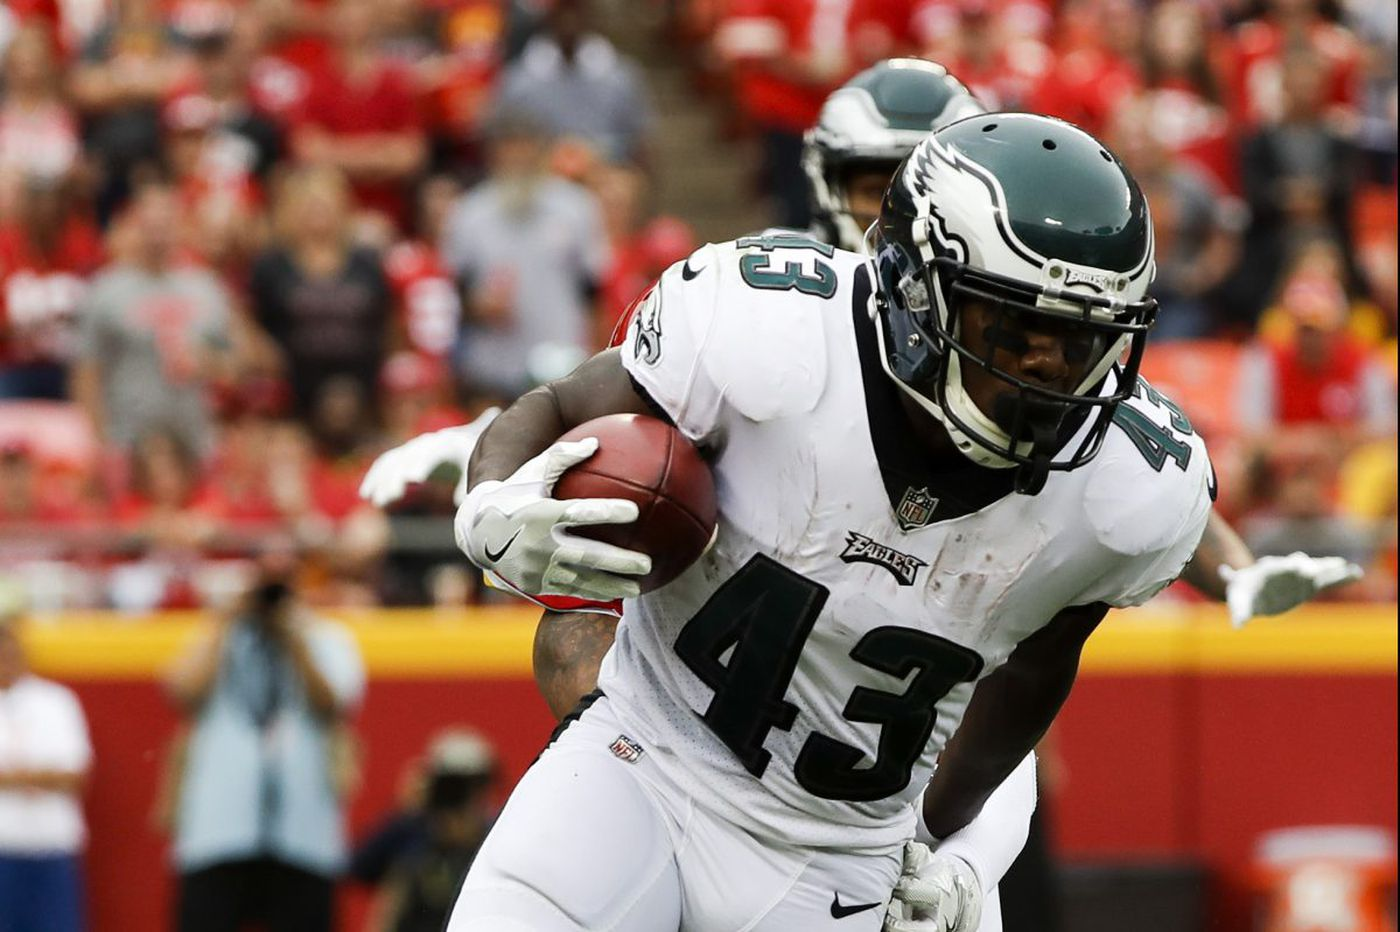 The argument for more Darren Sproles | Jeff McLane